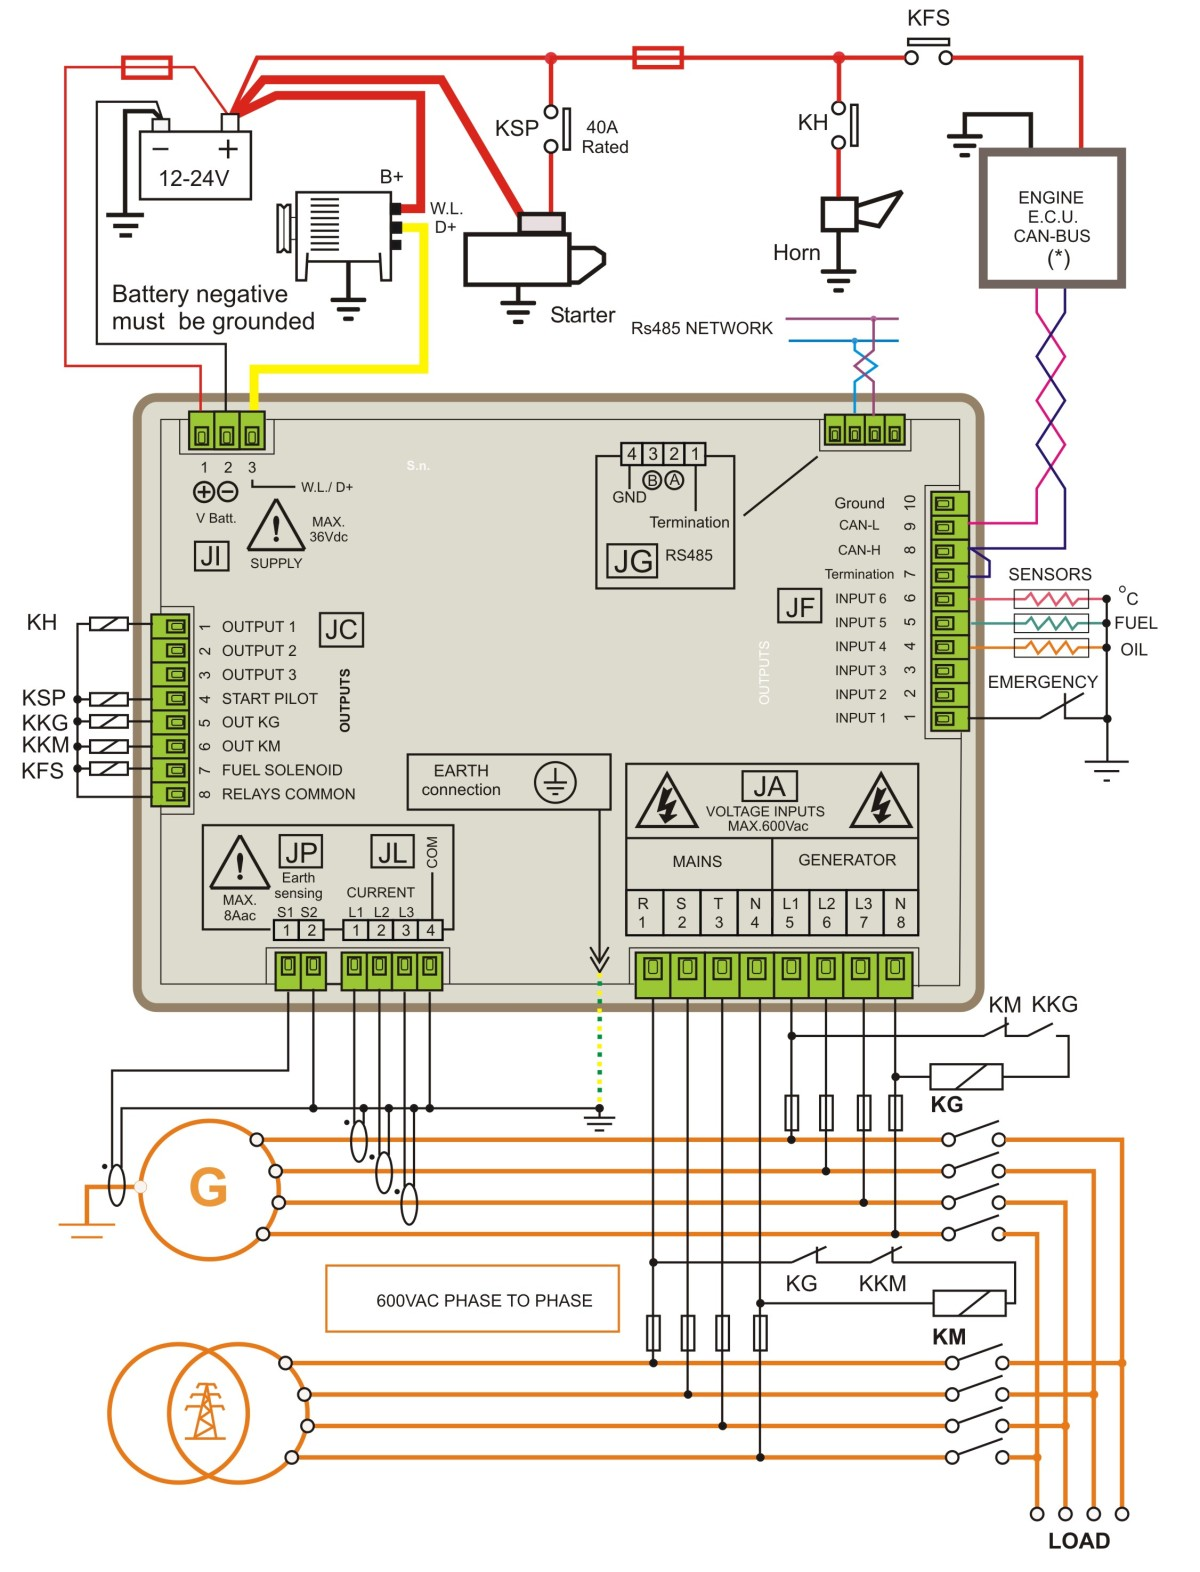 Deutz engine schematic get free image about wiring diagram